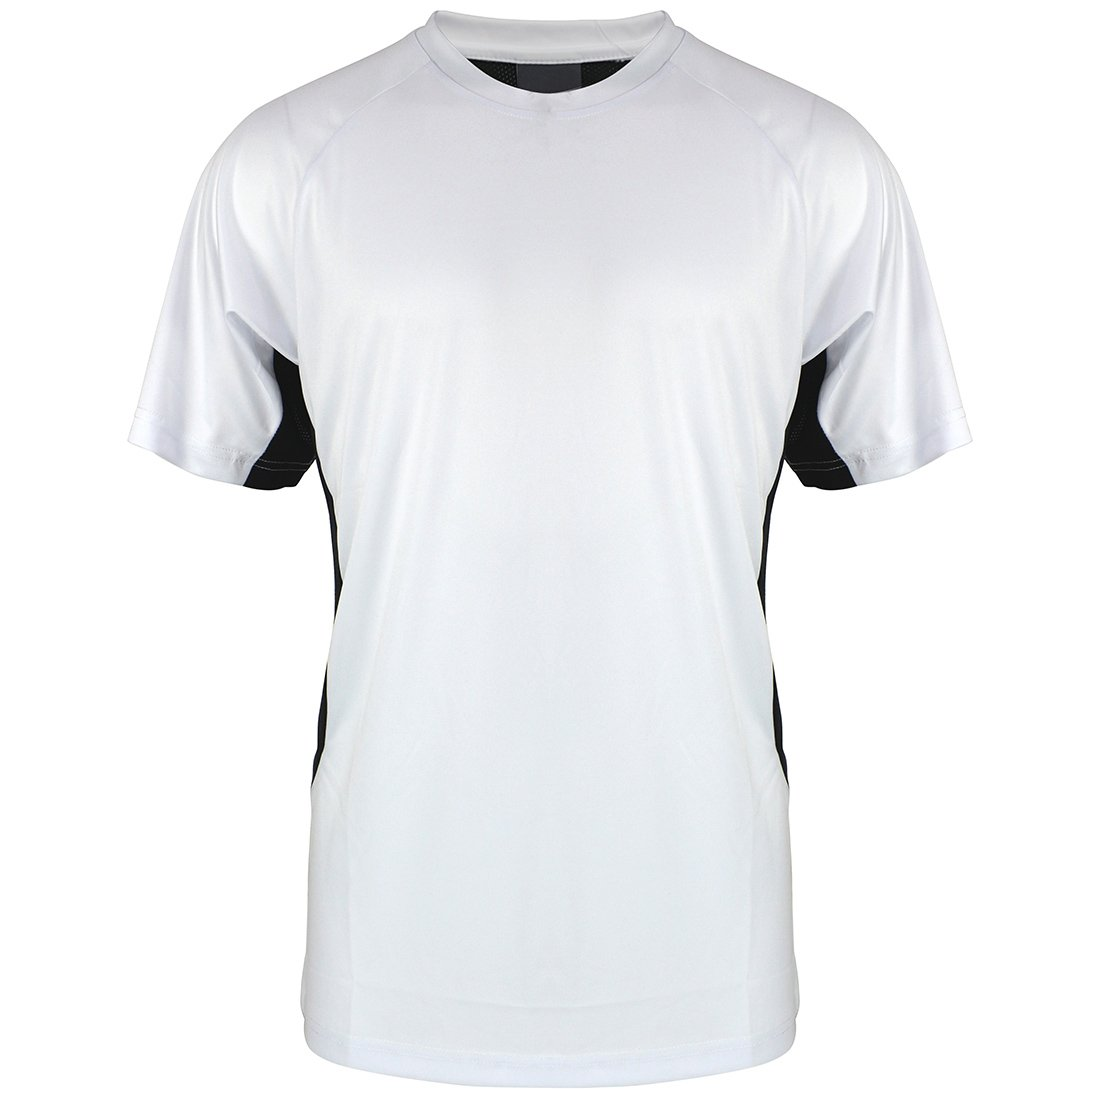 Gary Com Summer Sports T Shirts for Men Short Sleeve Gym Running Crew Neck Casual Youth Tee Workout T-Shirt Top